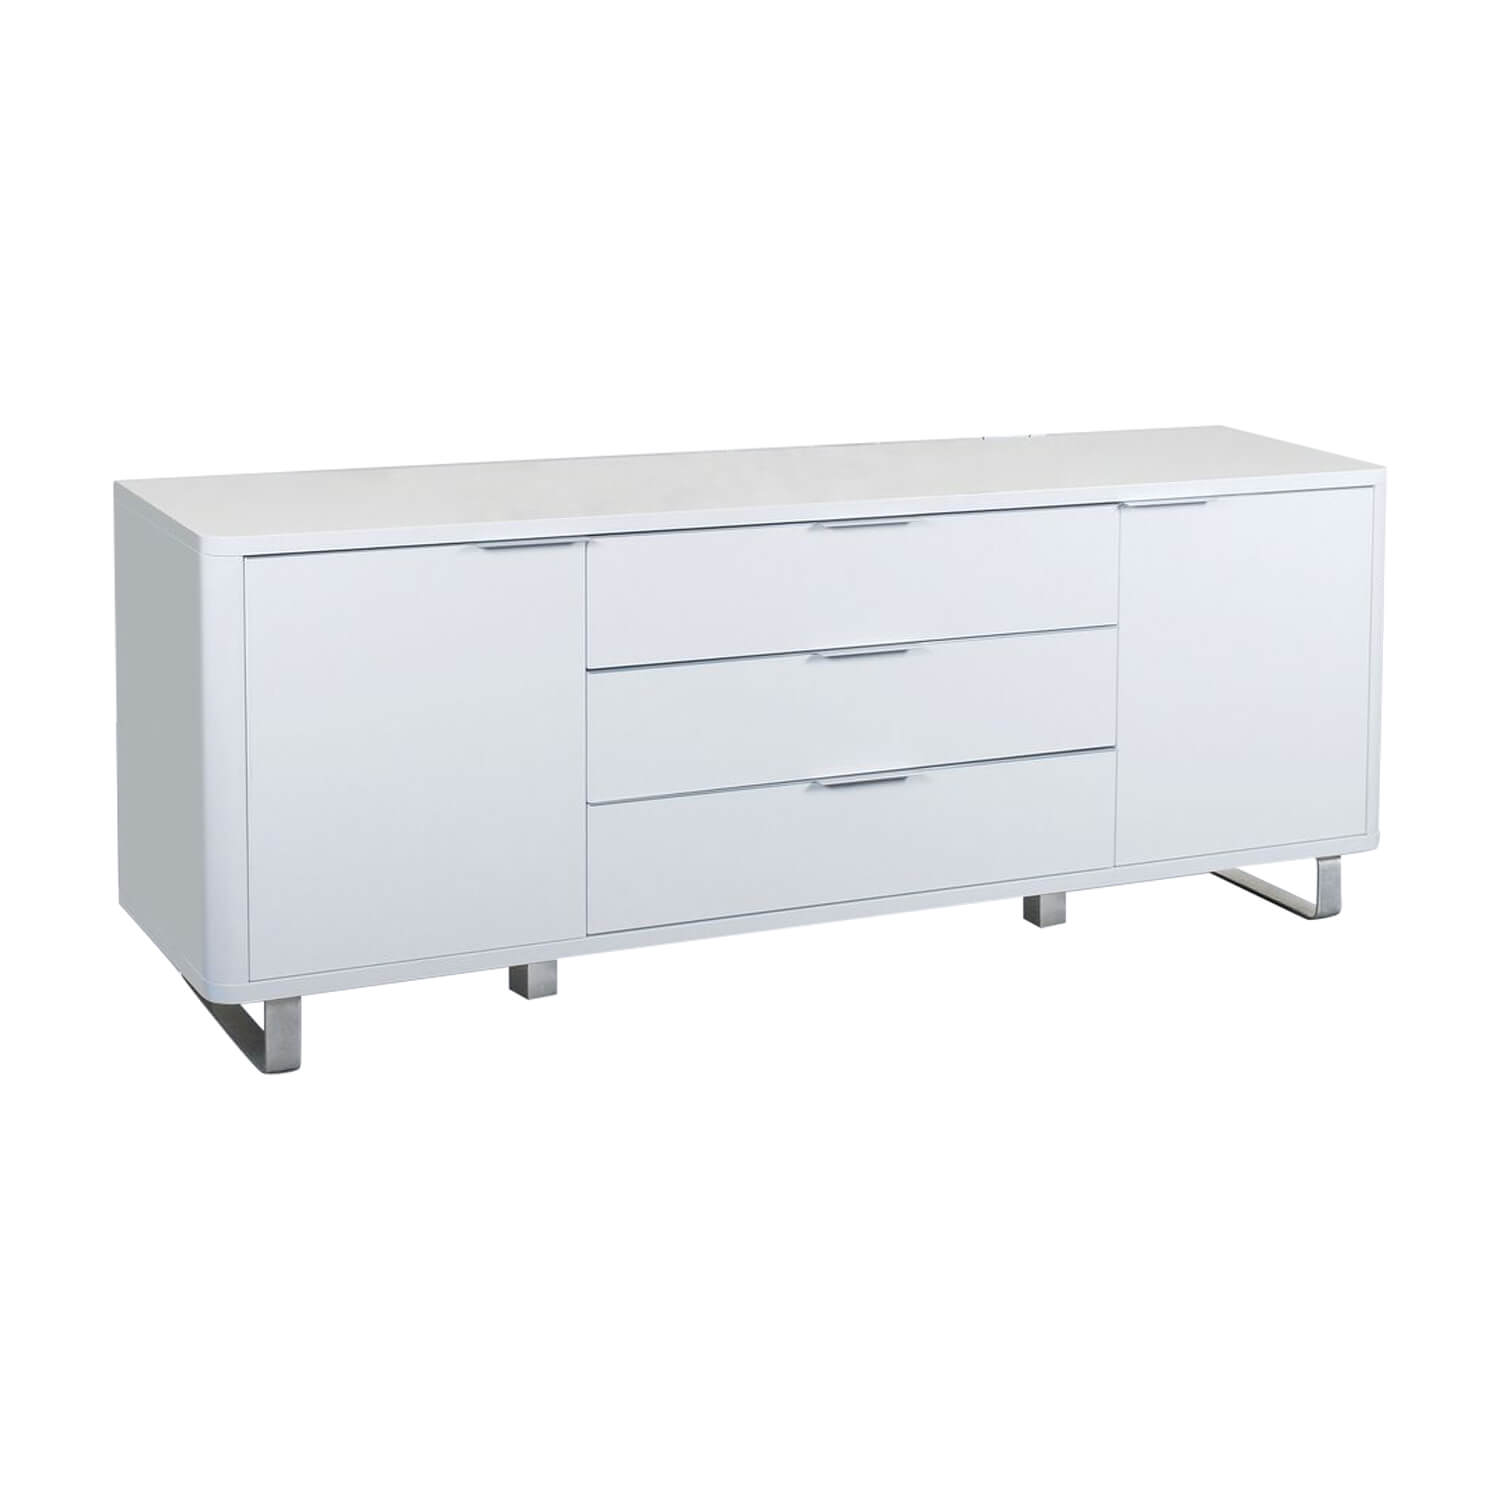 Accent Sideboard White High Gloss